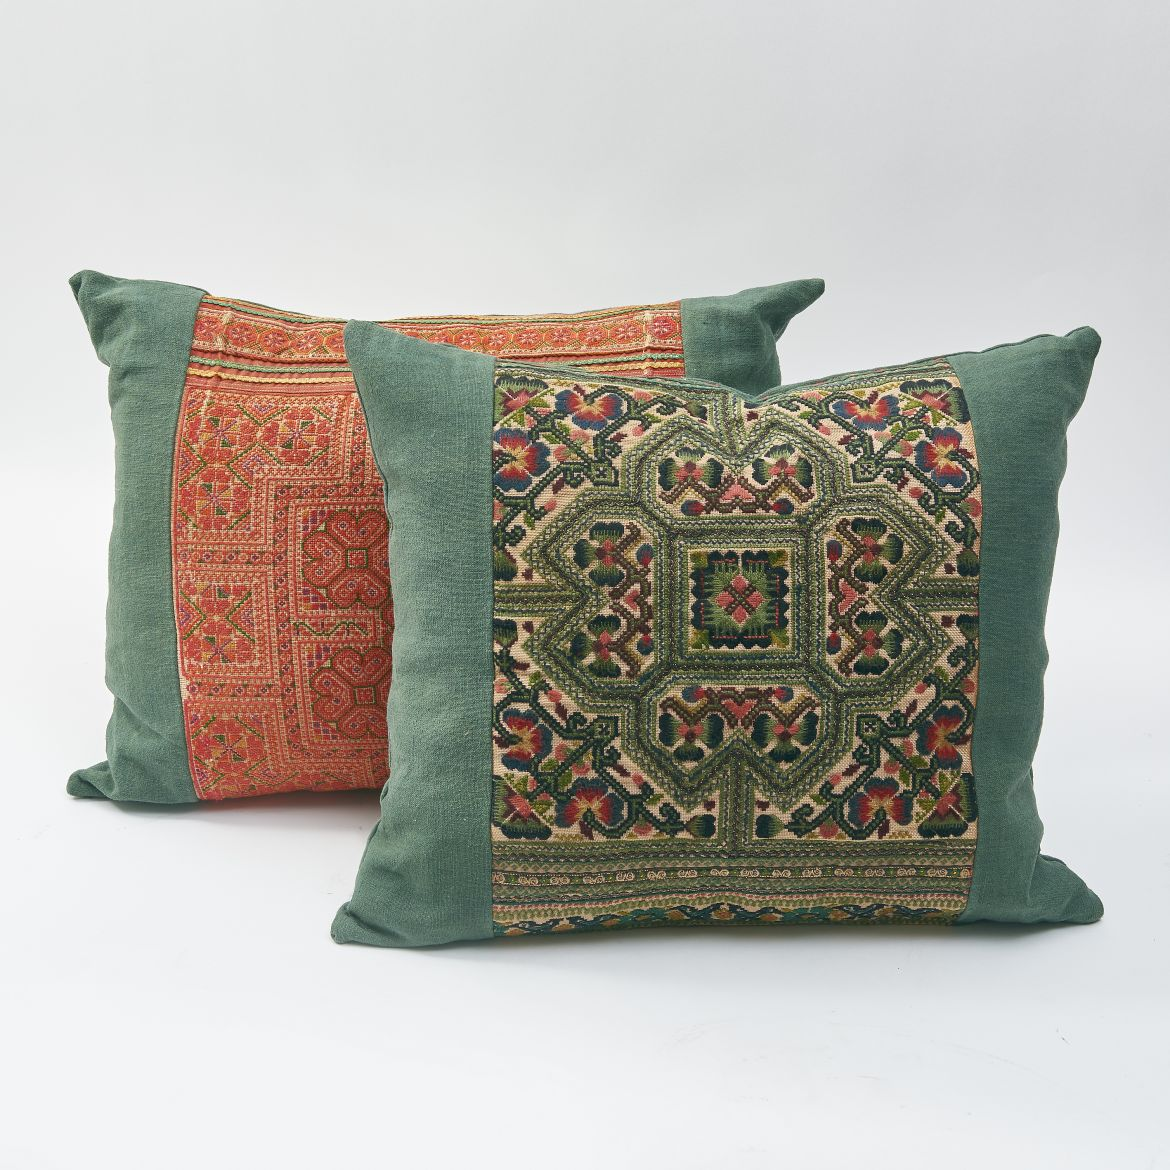 Embroidered Fabric Cushions